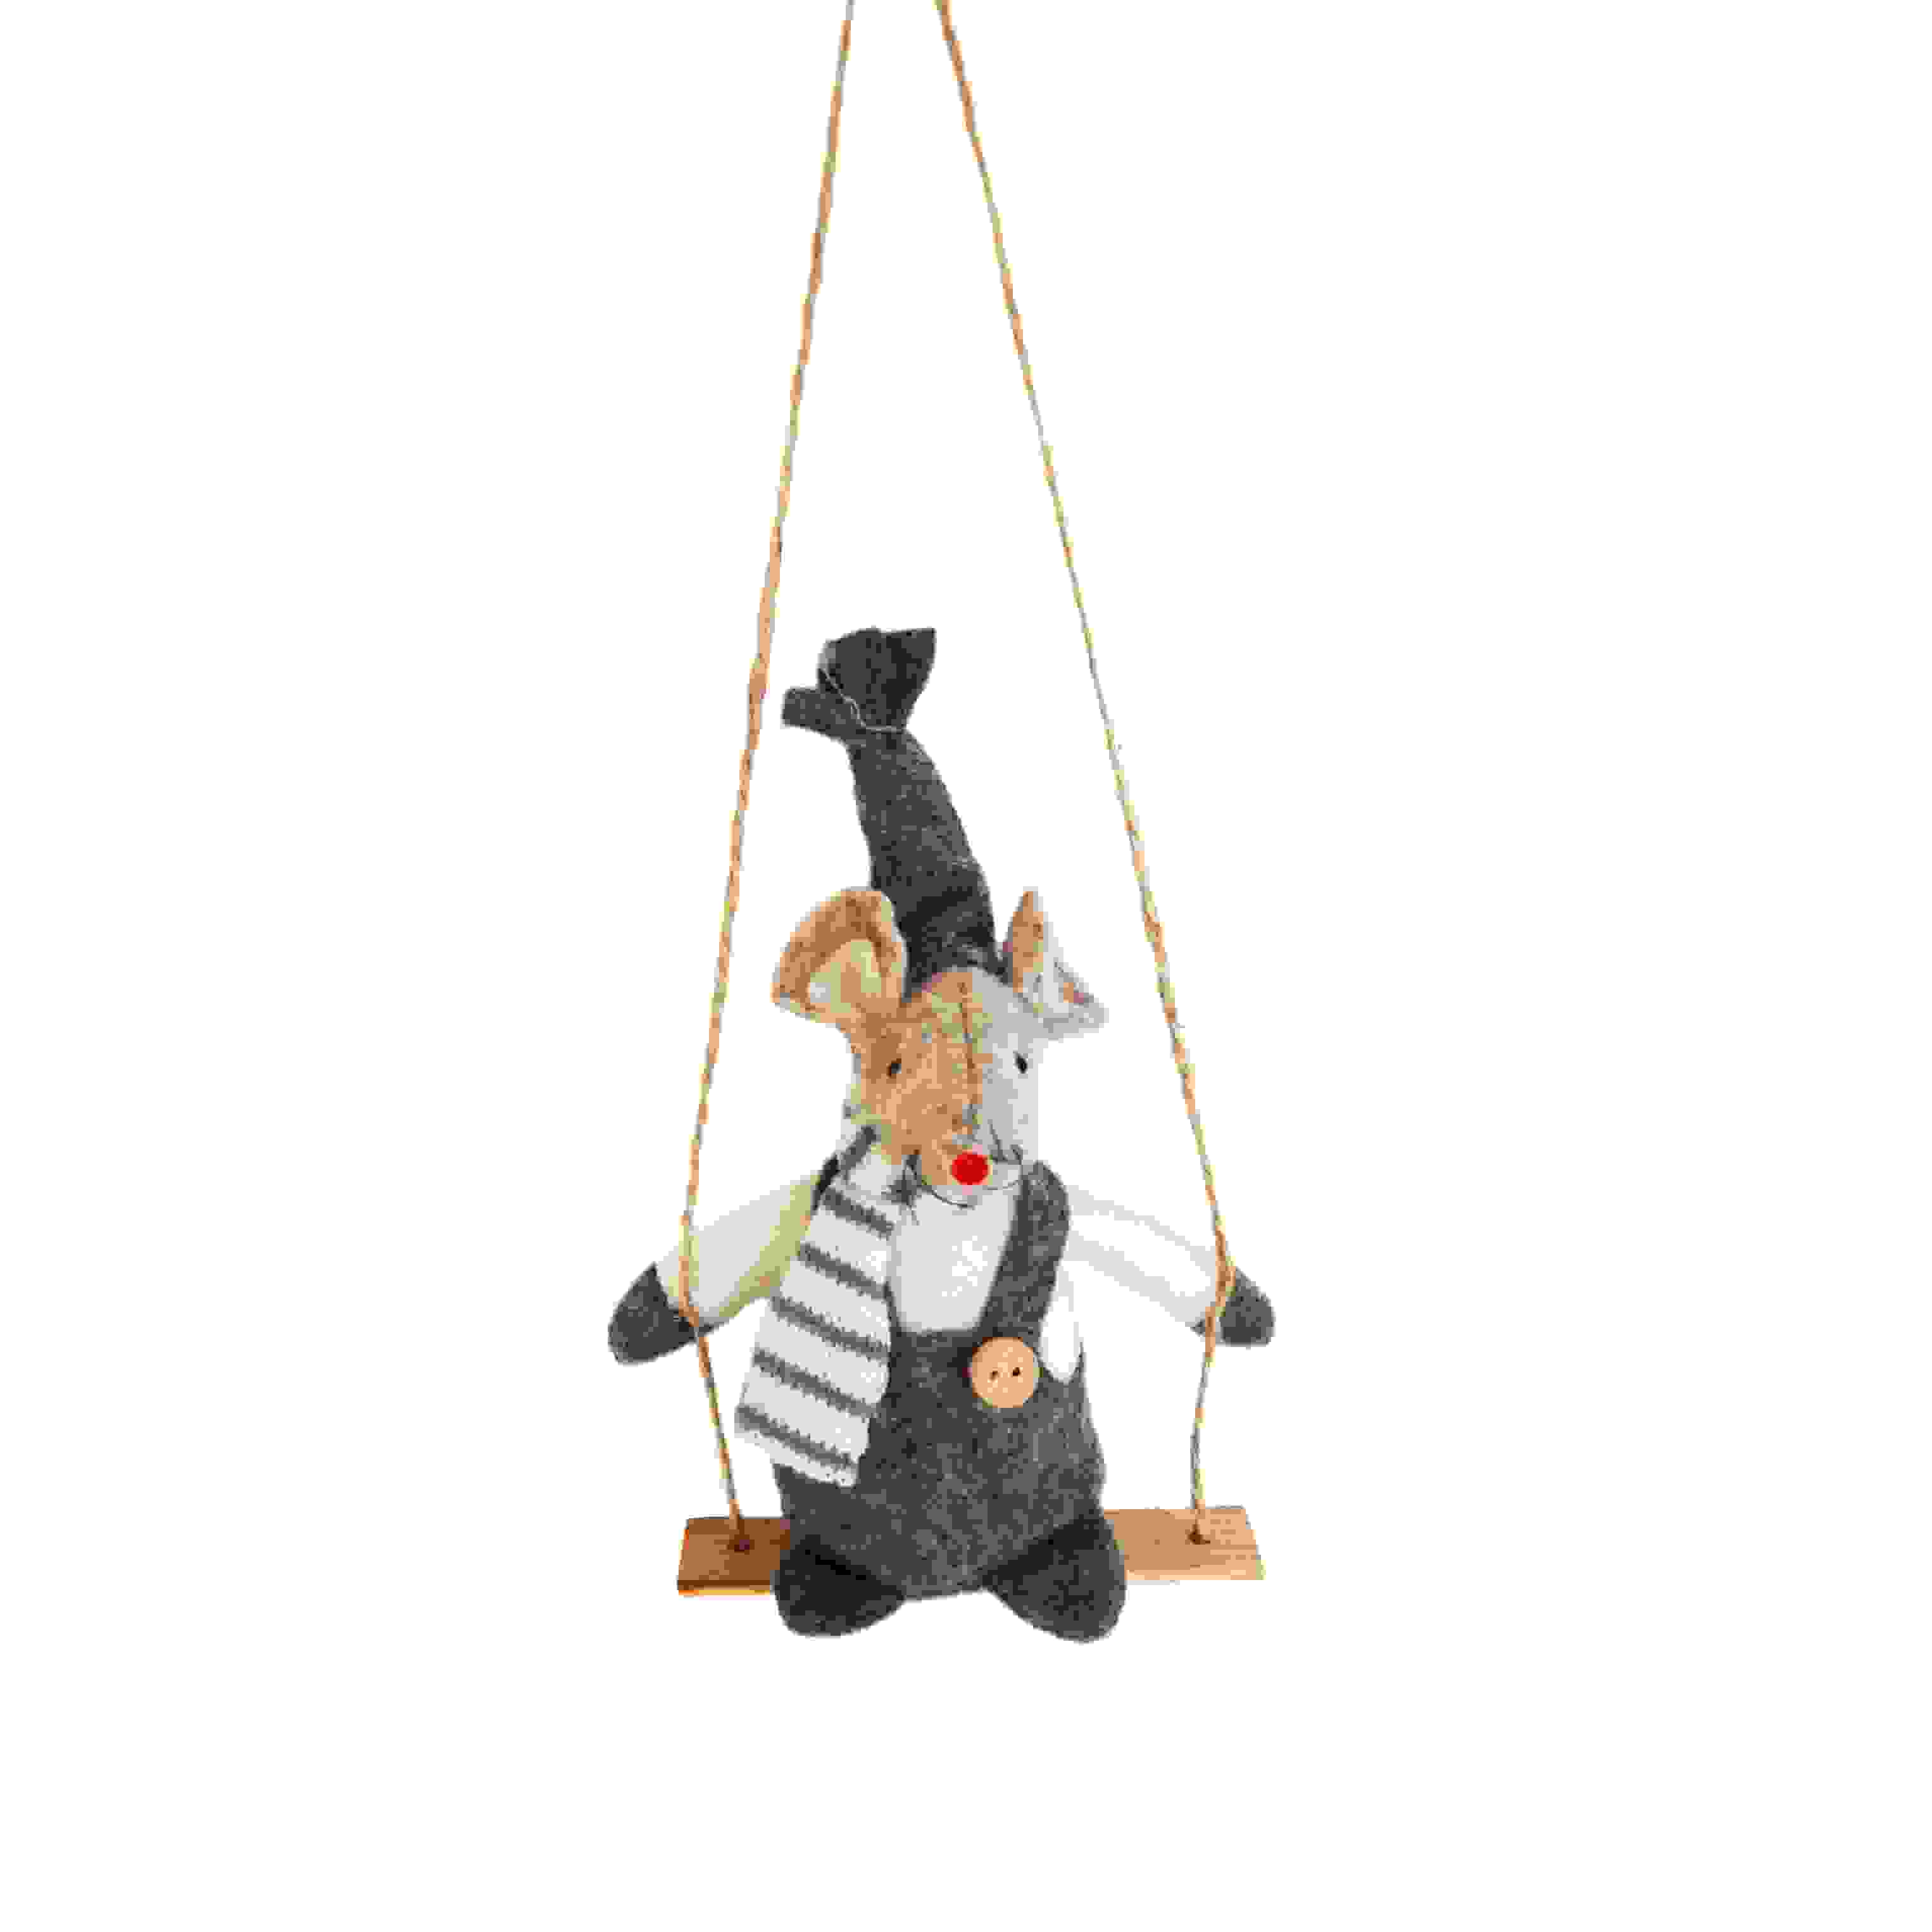 HANG. MOUSE ON SWING